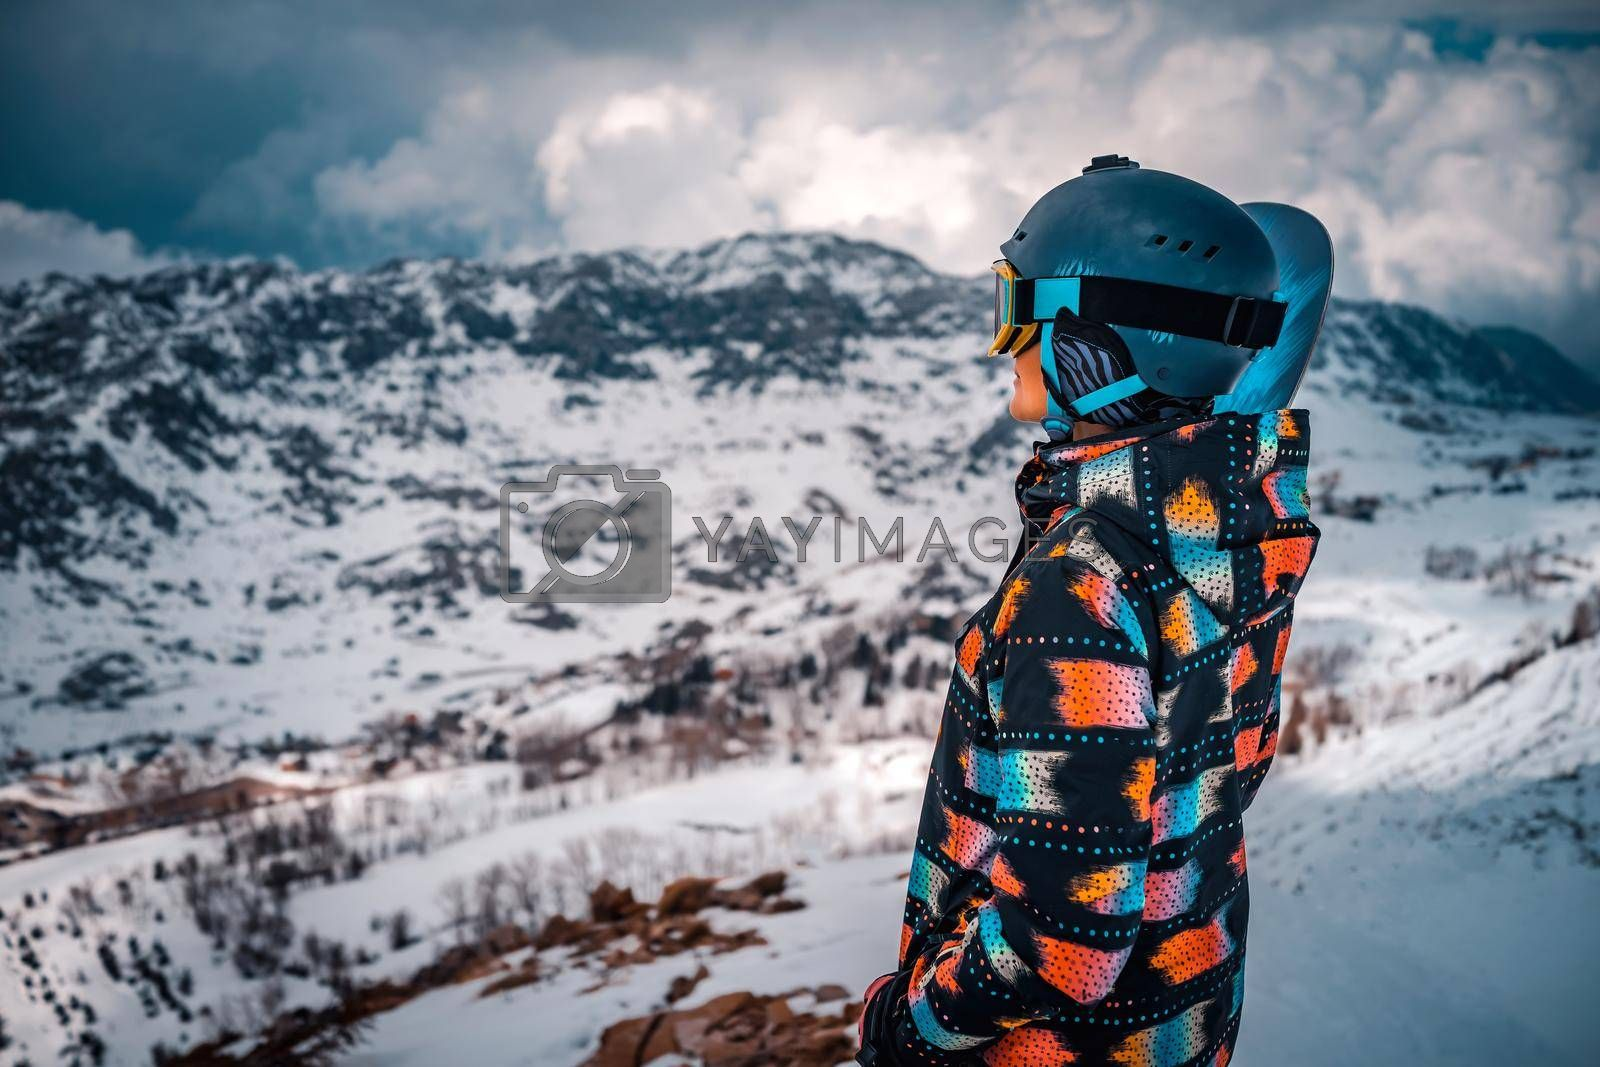 Snowboarder Girl Looks into the Distance at a Beautiful Winter Mountain Landscape. Active People Enjoying Ski Resort. Happy Wintertime Vacation.